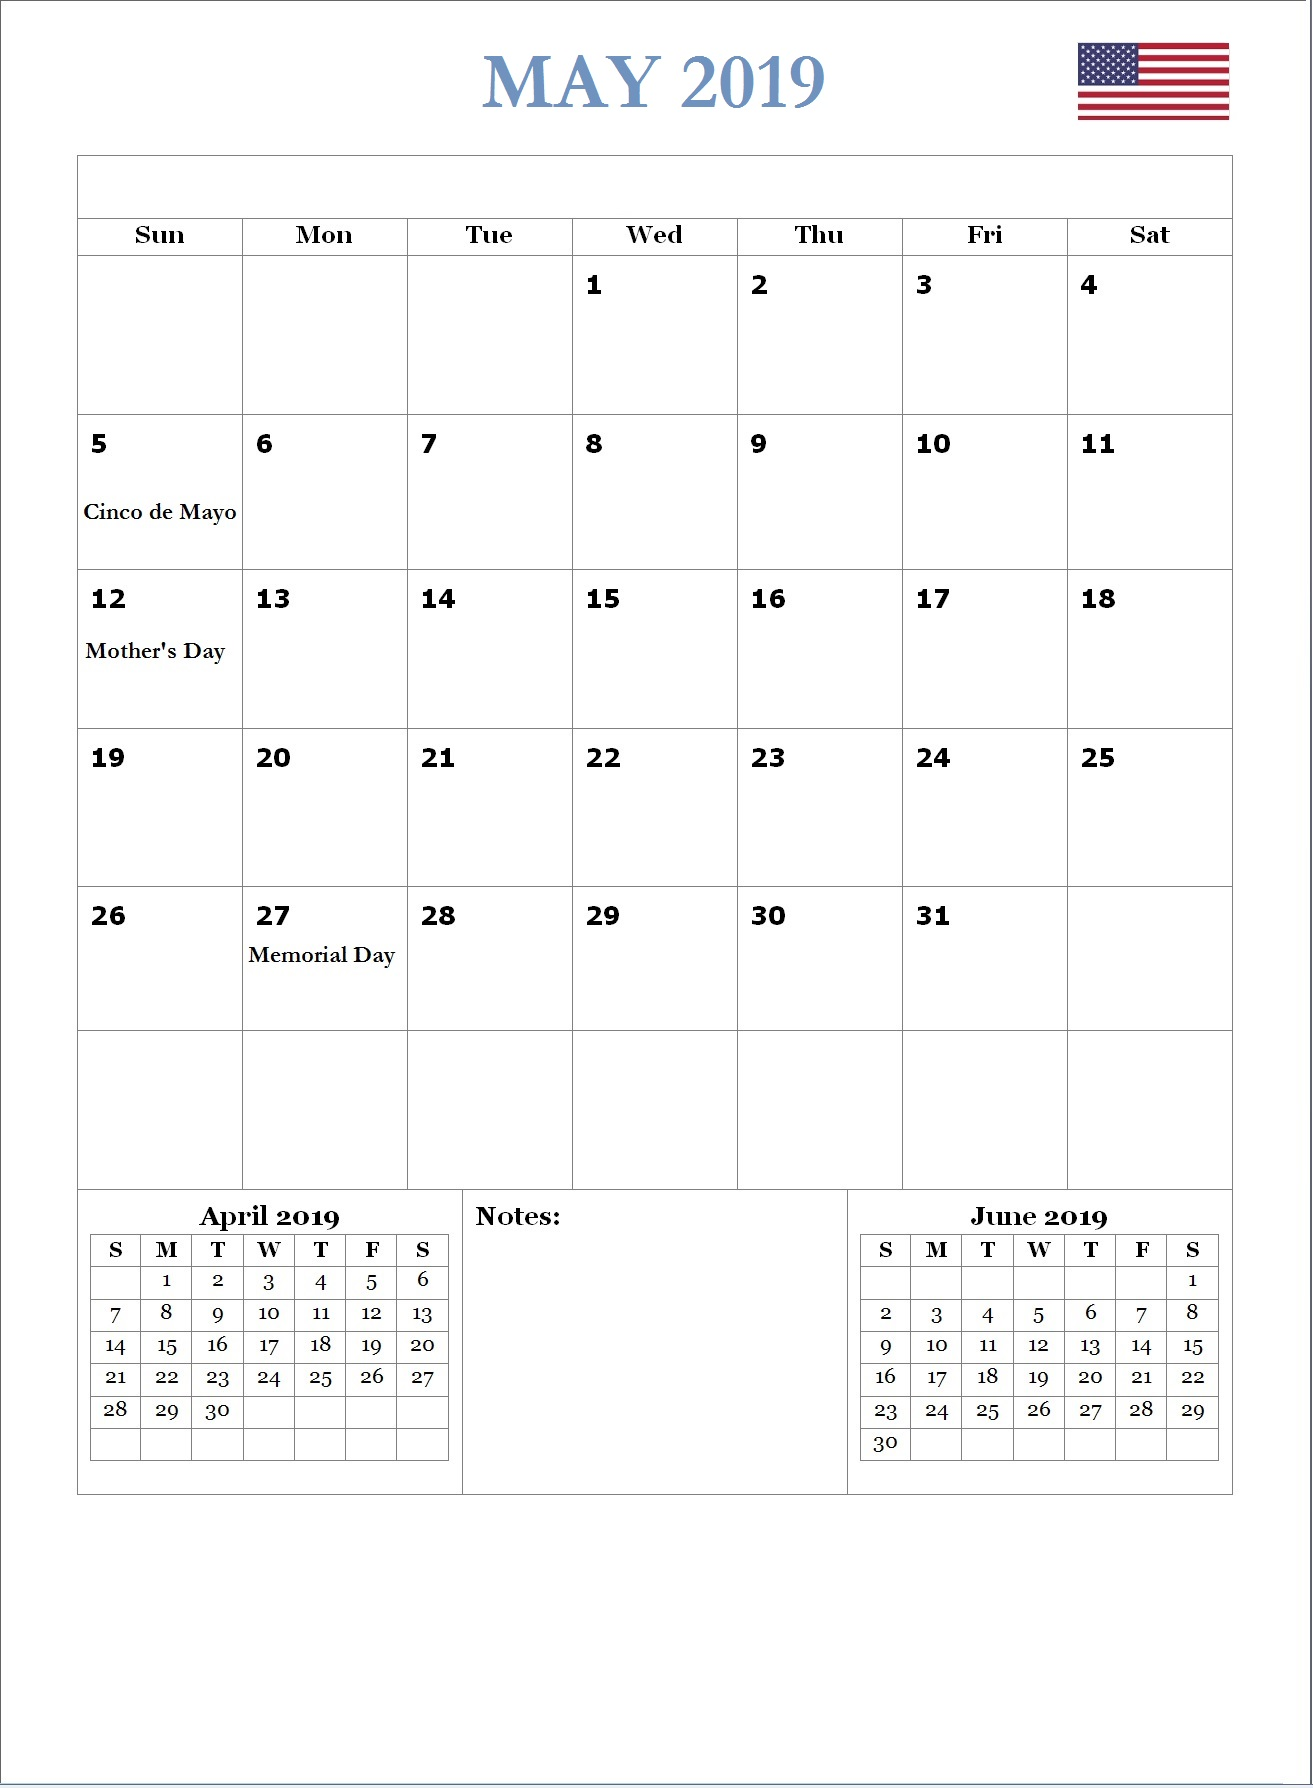 2019 May USA Holidays Calendar